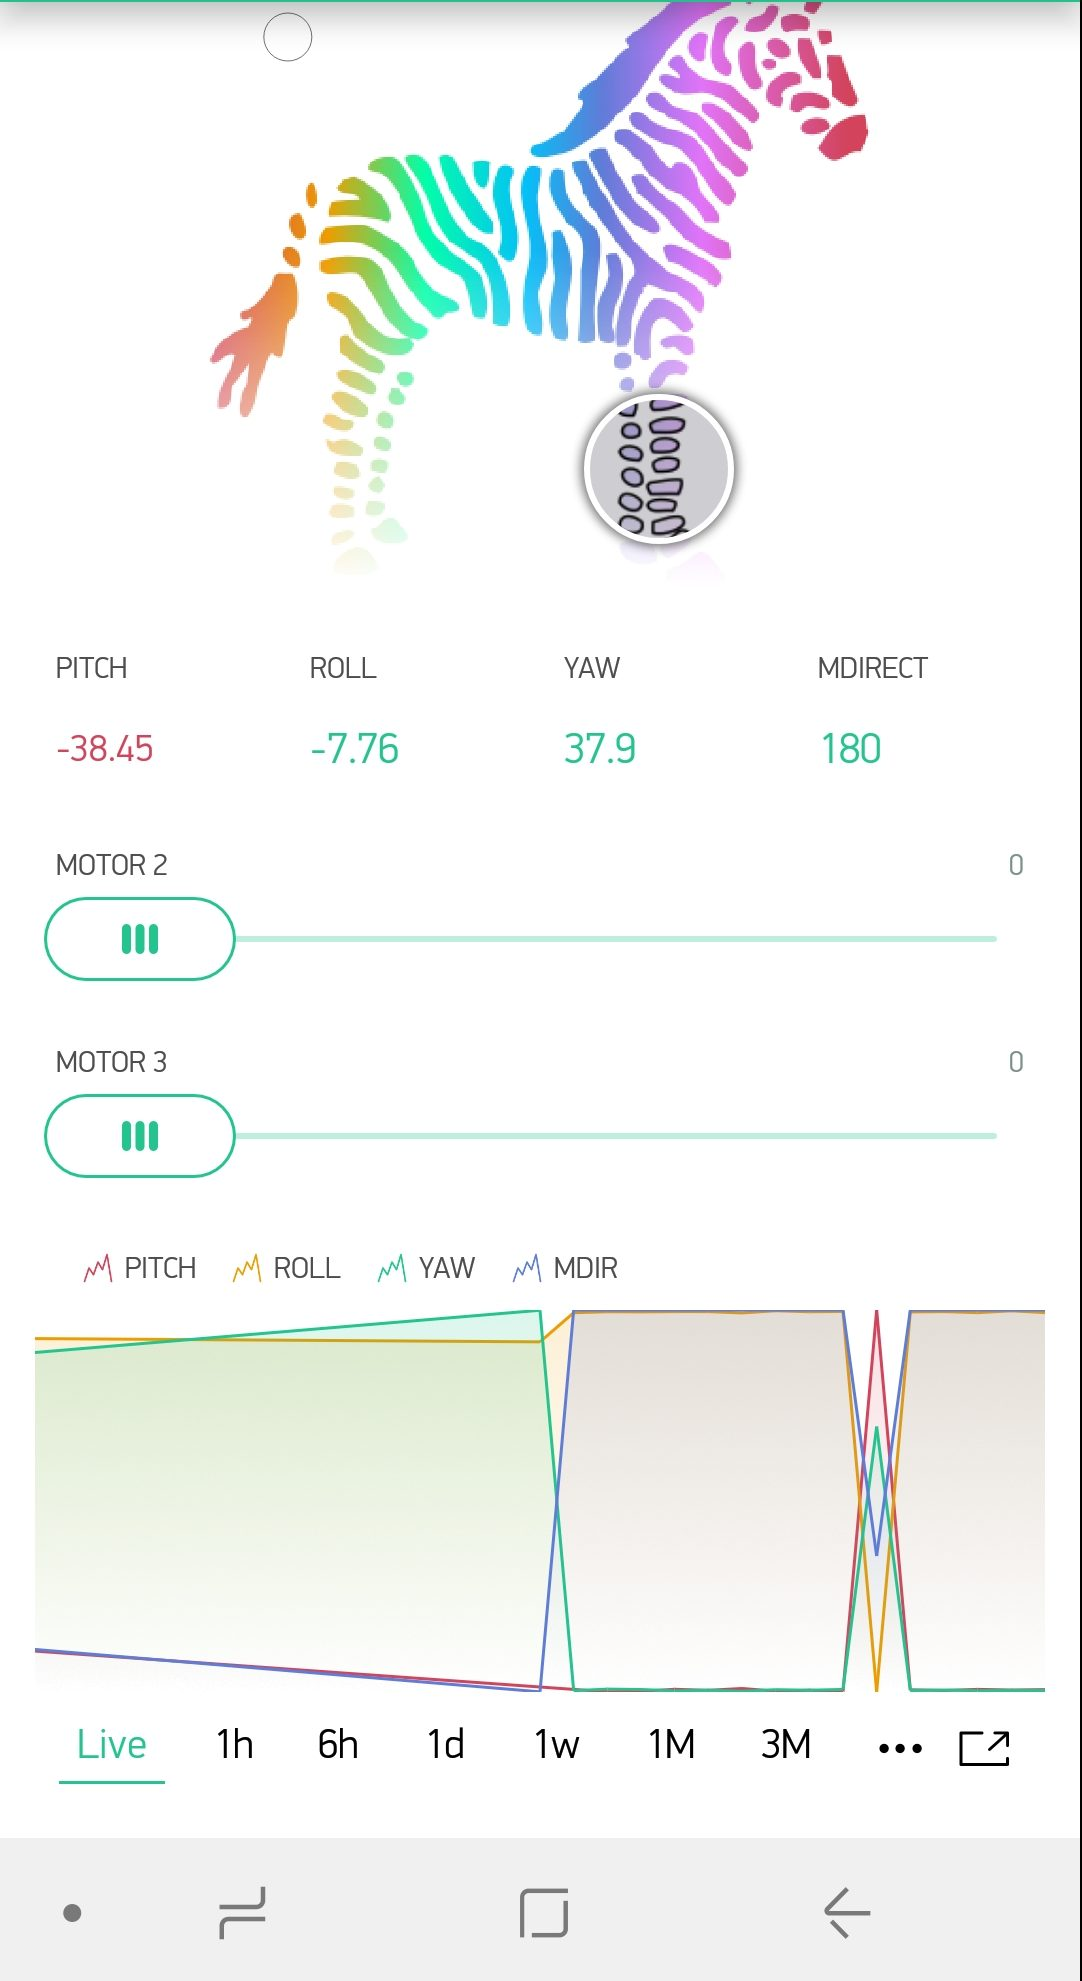 Sending motion data to the Blynk app (part 2 of the Blynk